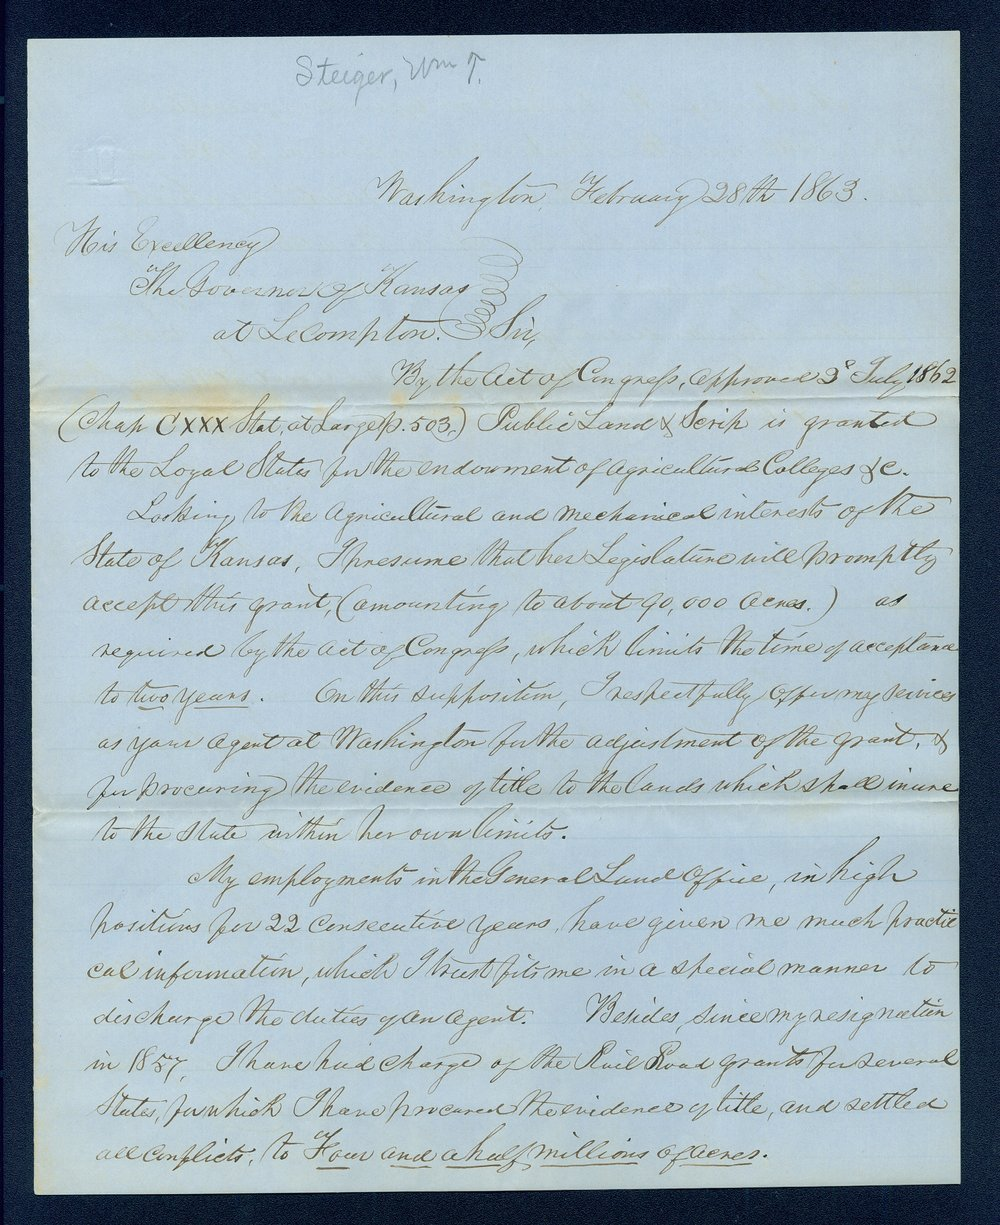 Governor Thomas Carney college and university lands, 1863, correspondence - 1